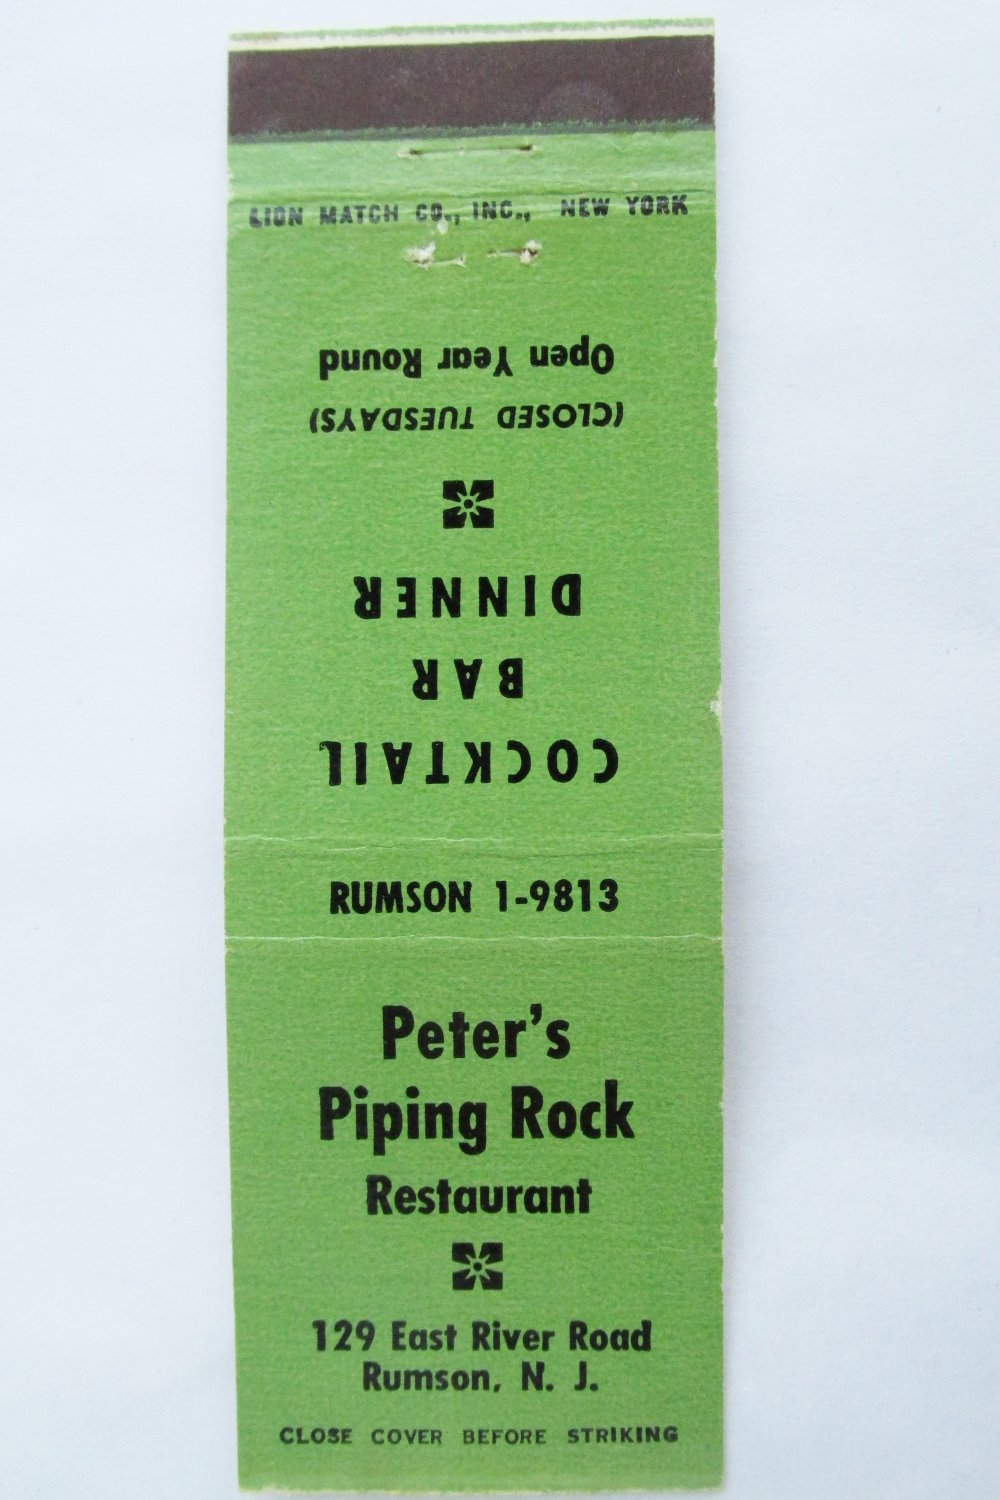 Peters Piping Rock Restaurant Rumson New Jersey NJ 20 Strike Matchbook Cover Map